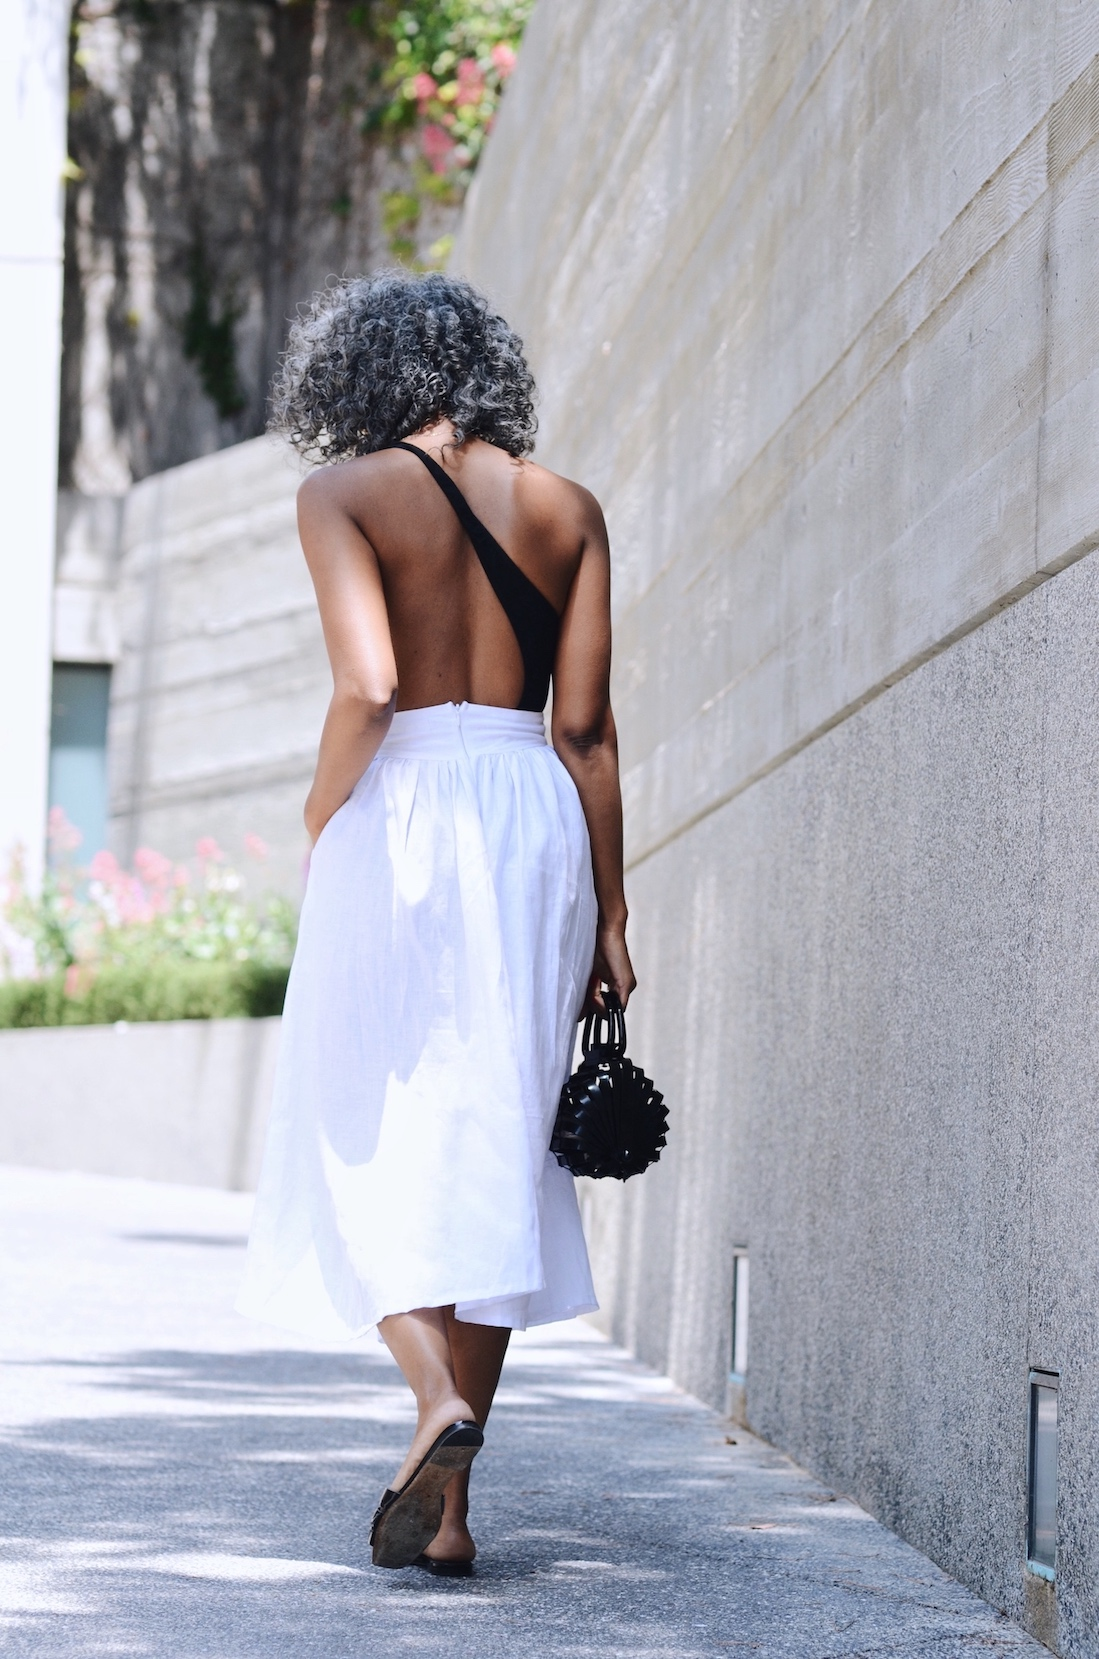 Asymmetrical bodysuit adds drama to a simple summer outfit // A Week Of Sophisticated Slow Fashion Outfits With Tennille Murphy From The Tennille Life on The Good Trade